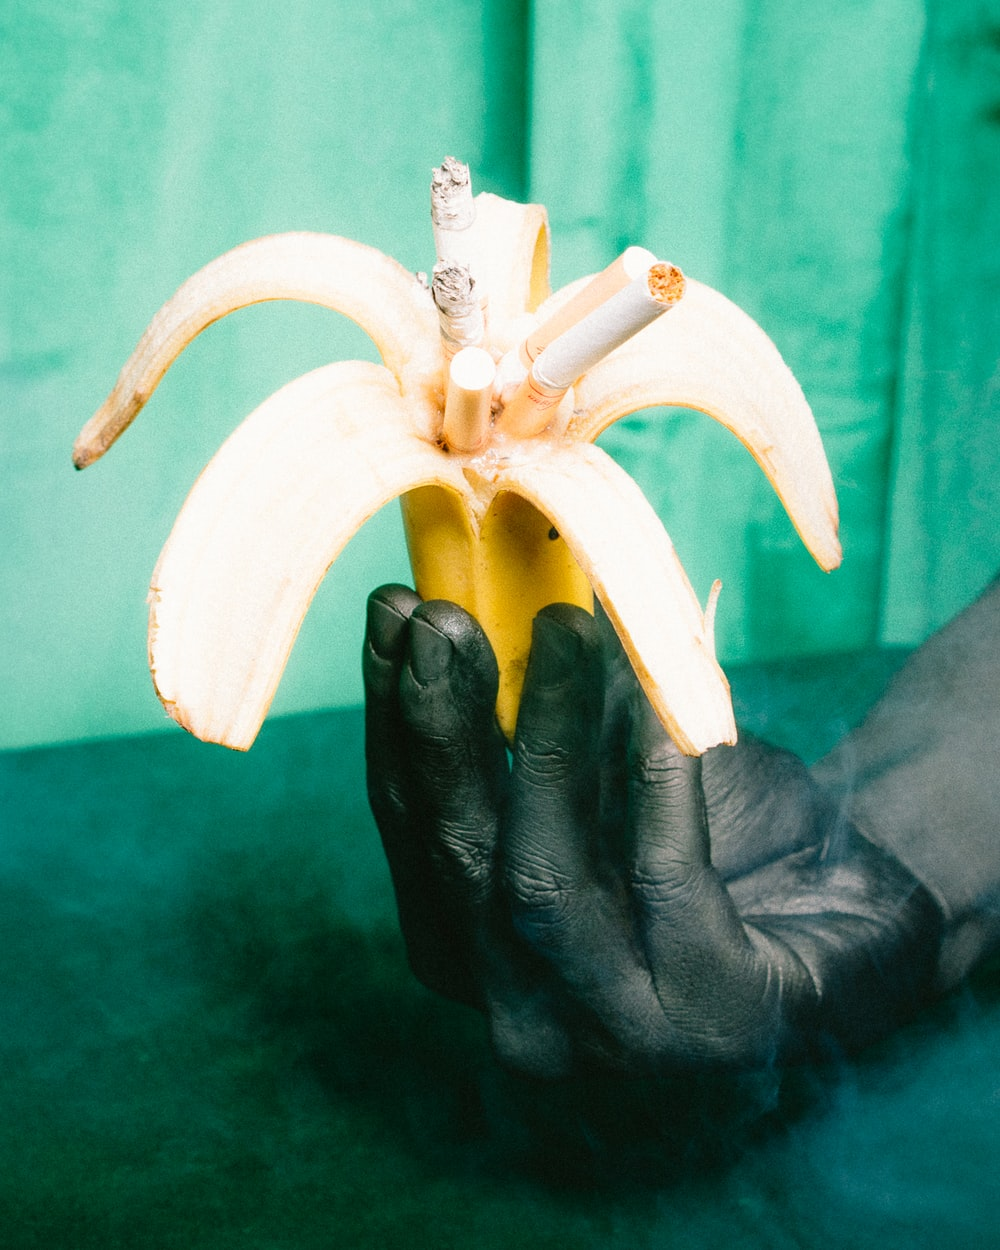 banana peel filled with cigarette butts